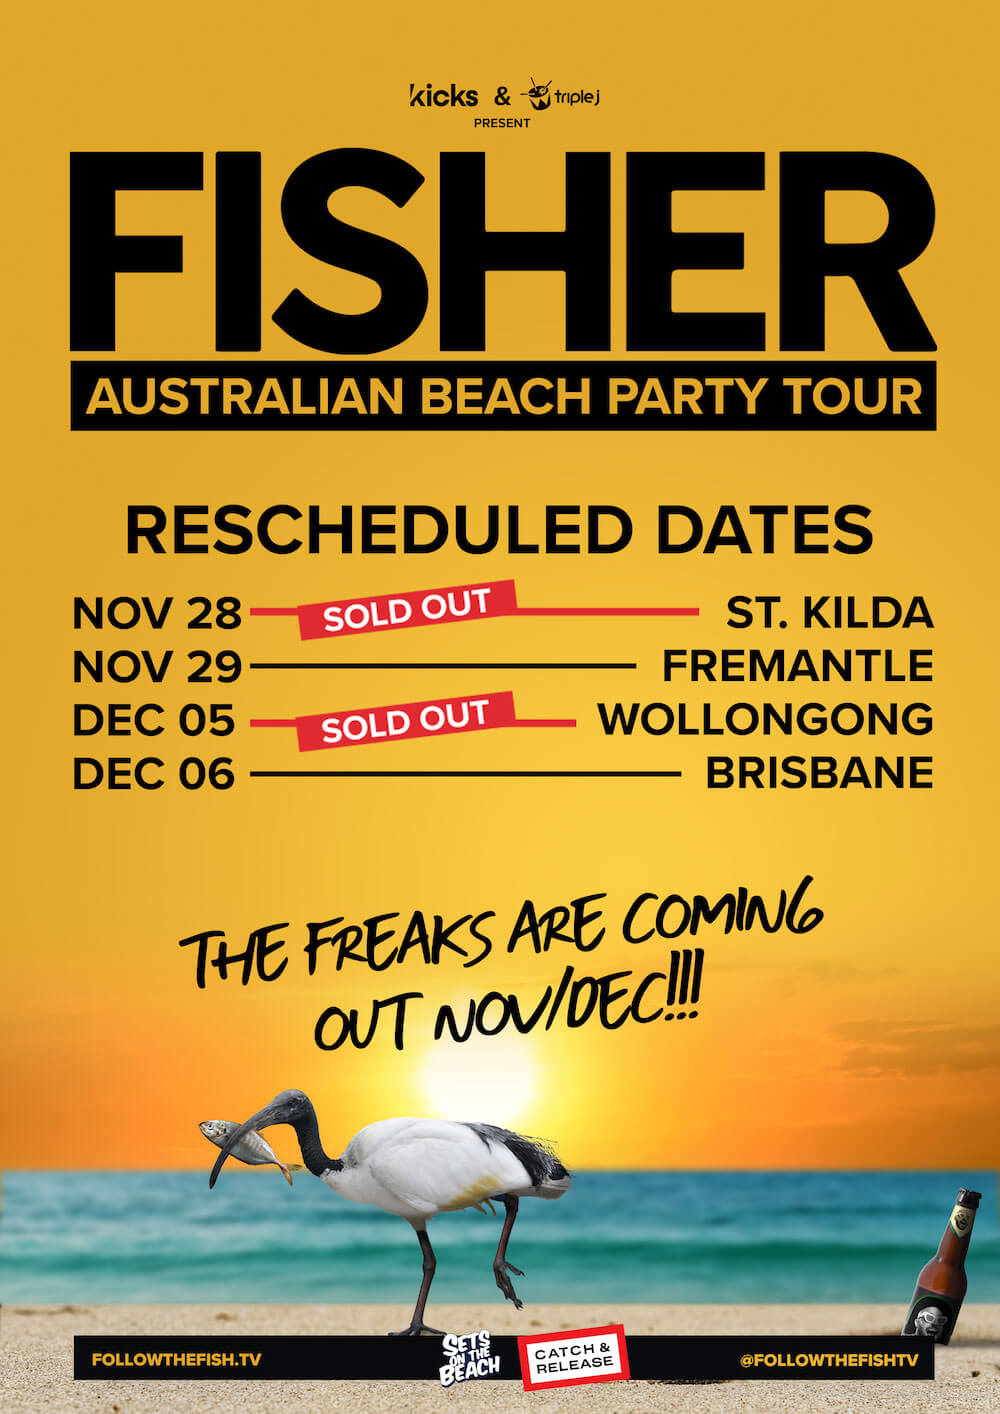 fisher-australia-tour-recheduled-dates-2020-oz-edm